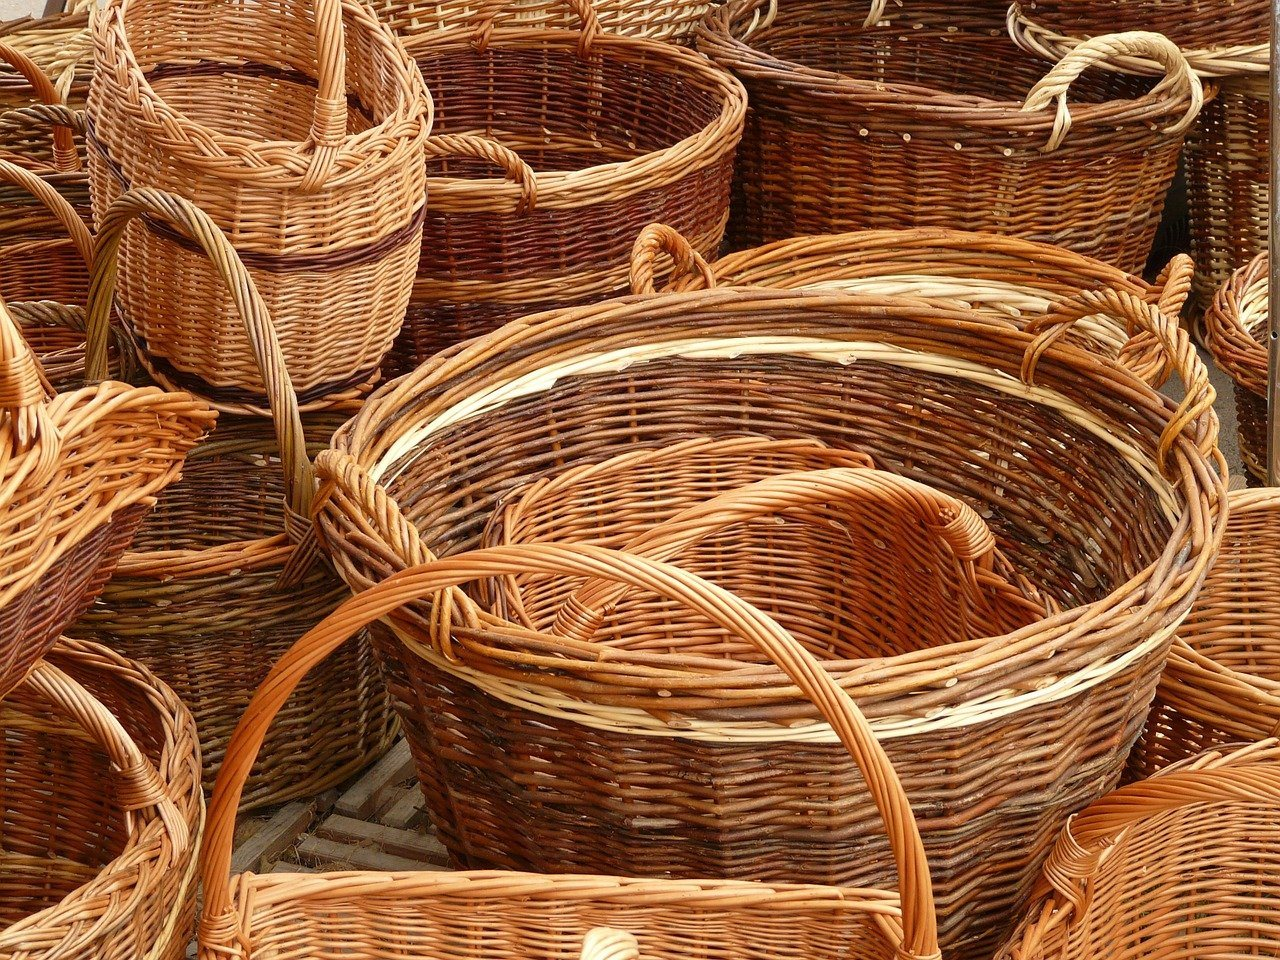 Wicker in Europe & The Rest of The World